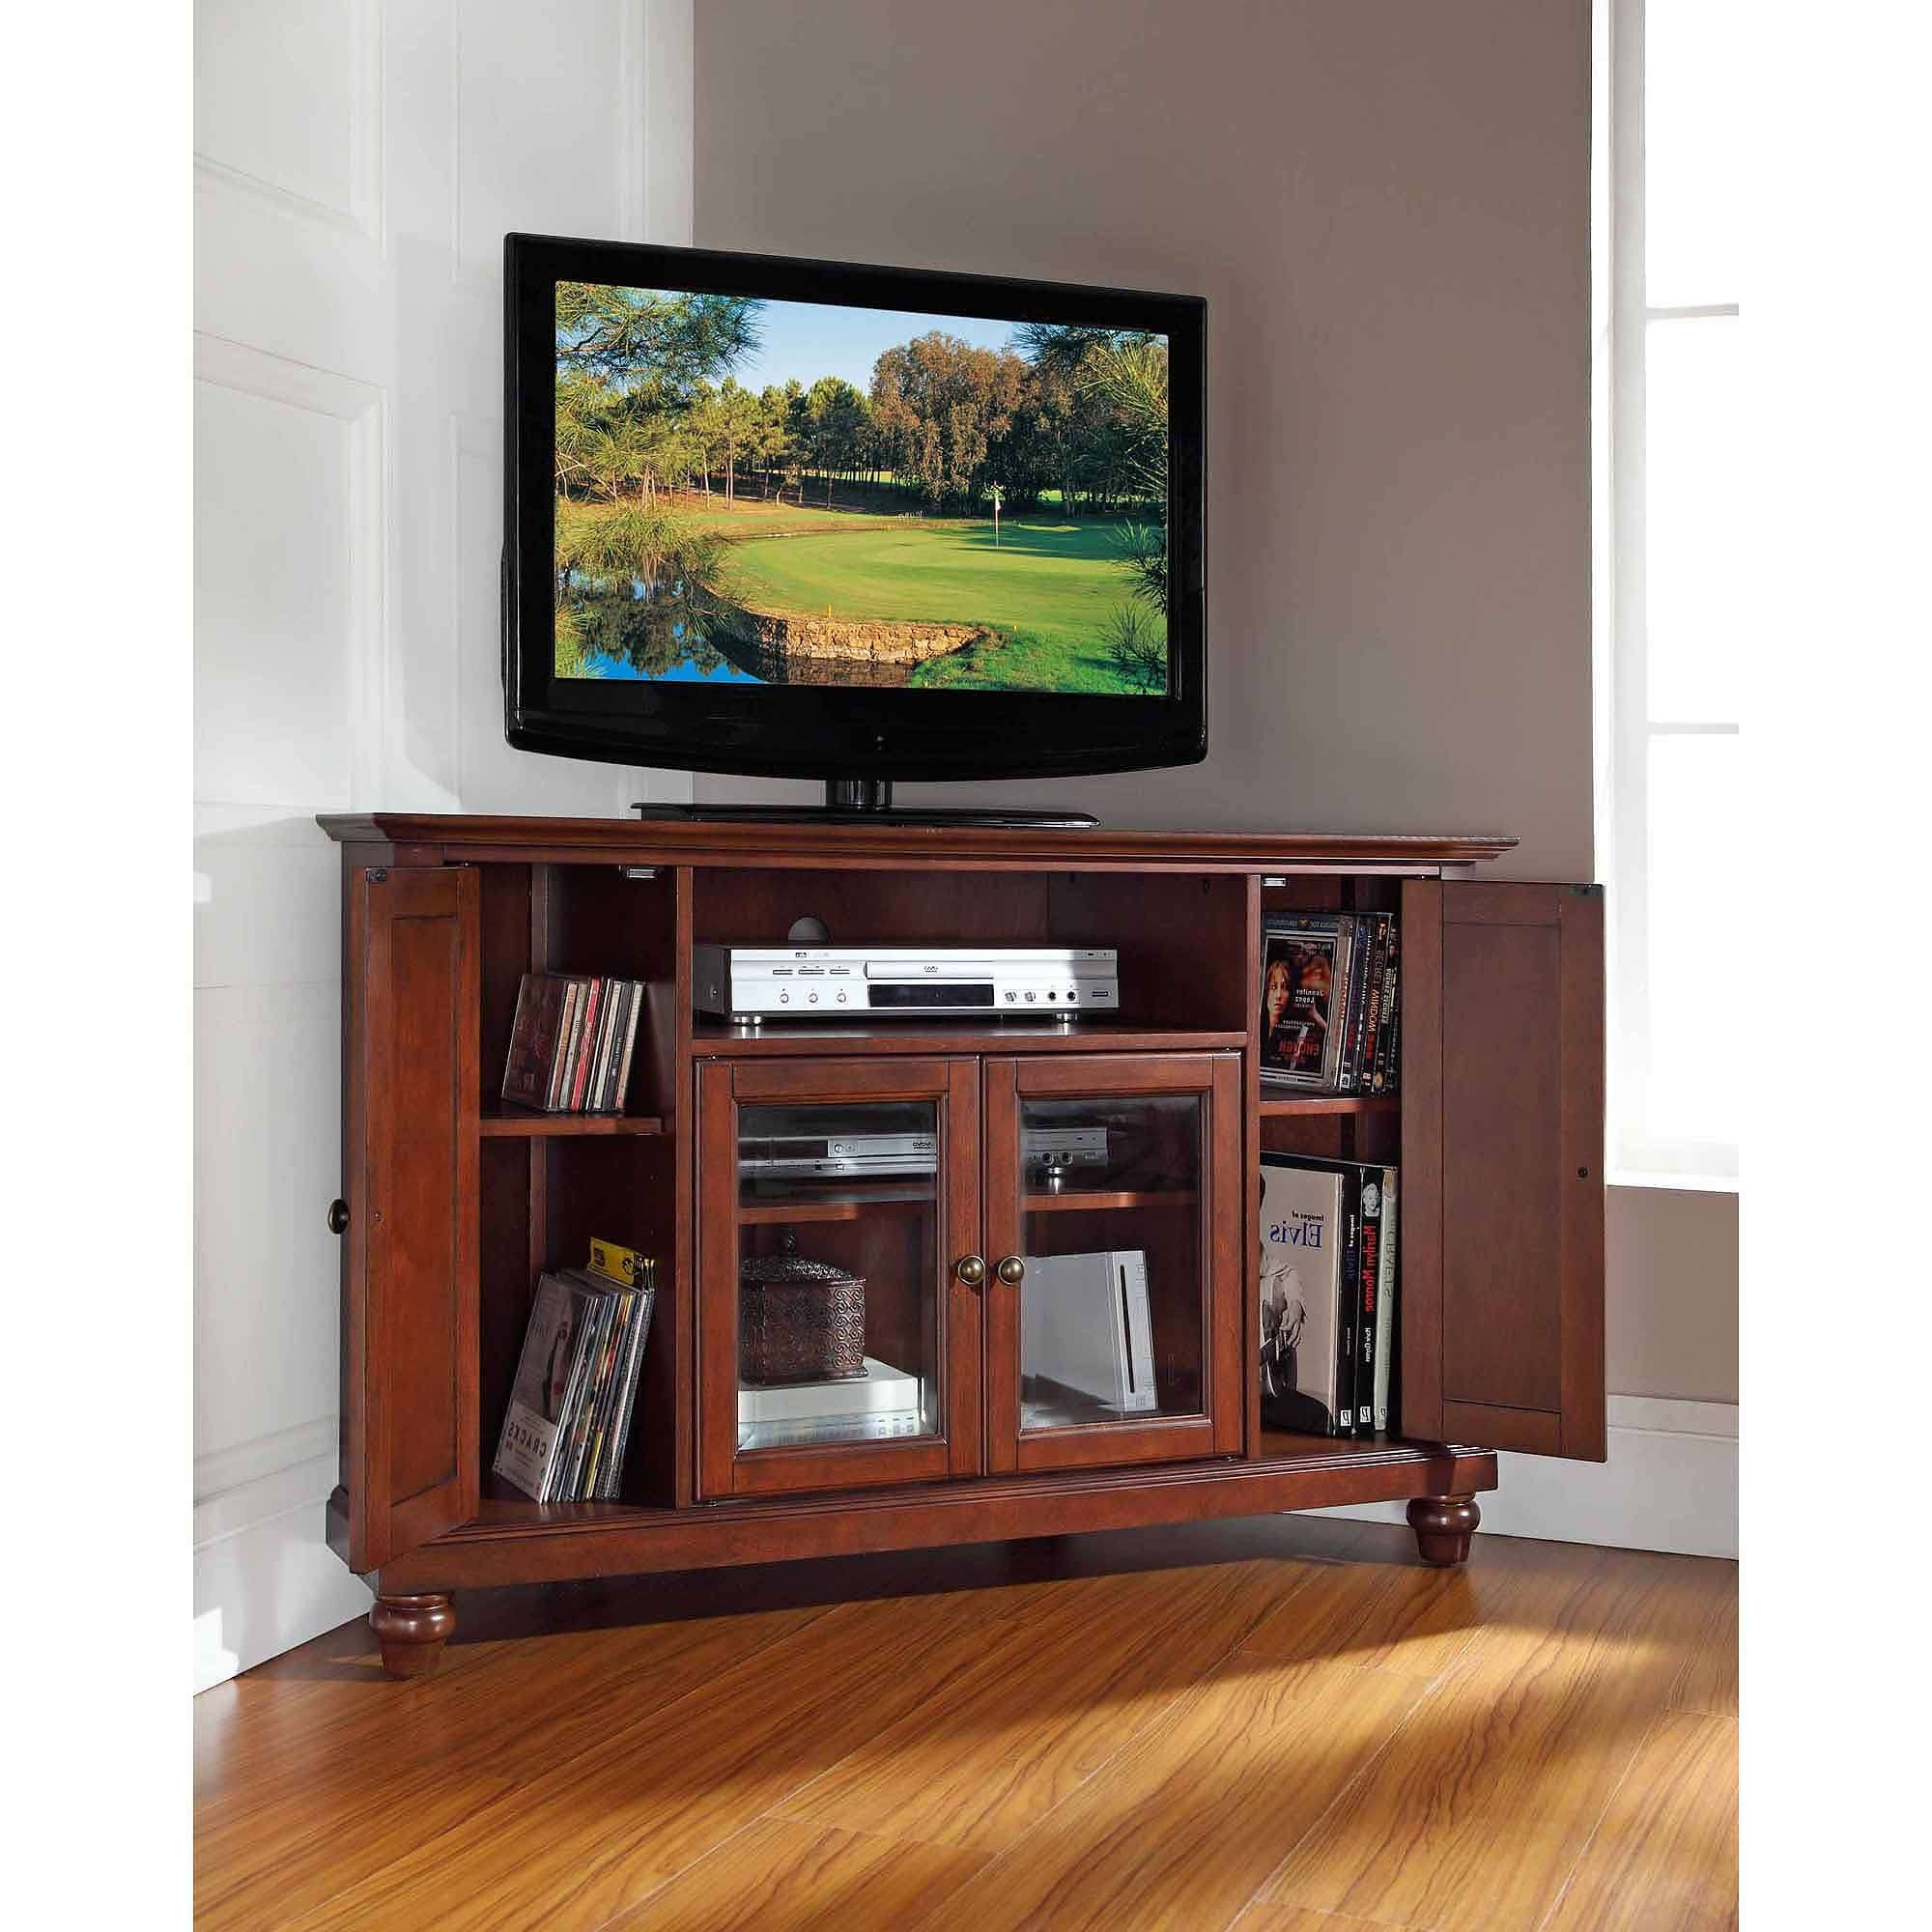 Tv : 41 Stunning 40 Inch Tv Stand Wood Photos Concept Stunning In Corner Tv Stands 40 Inch (View 9 of 20)